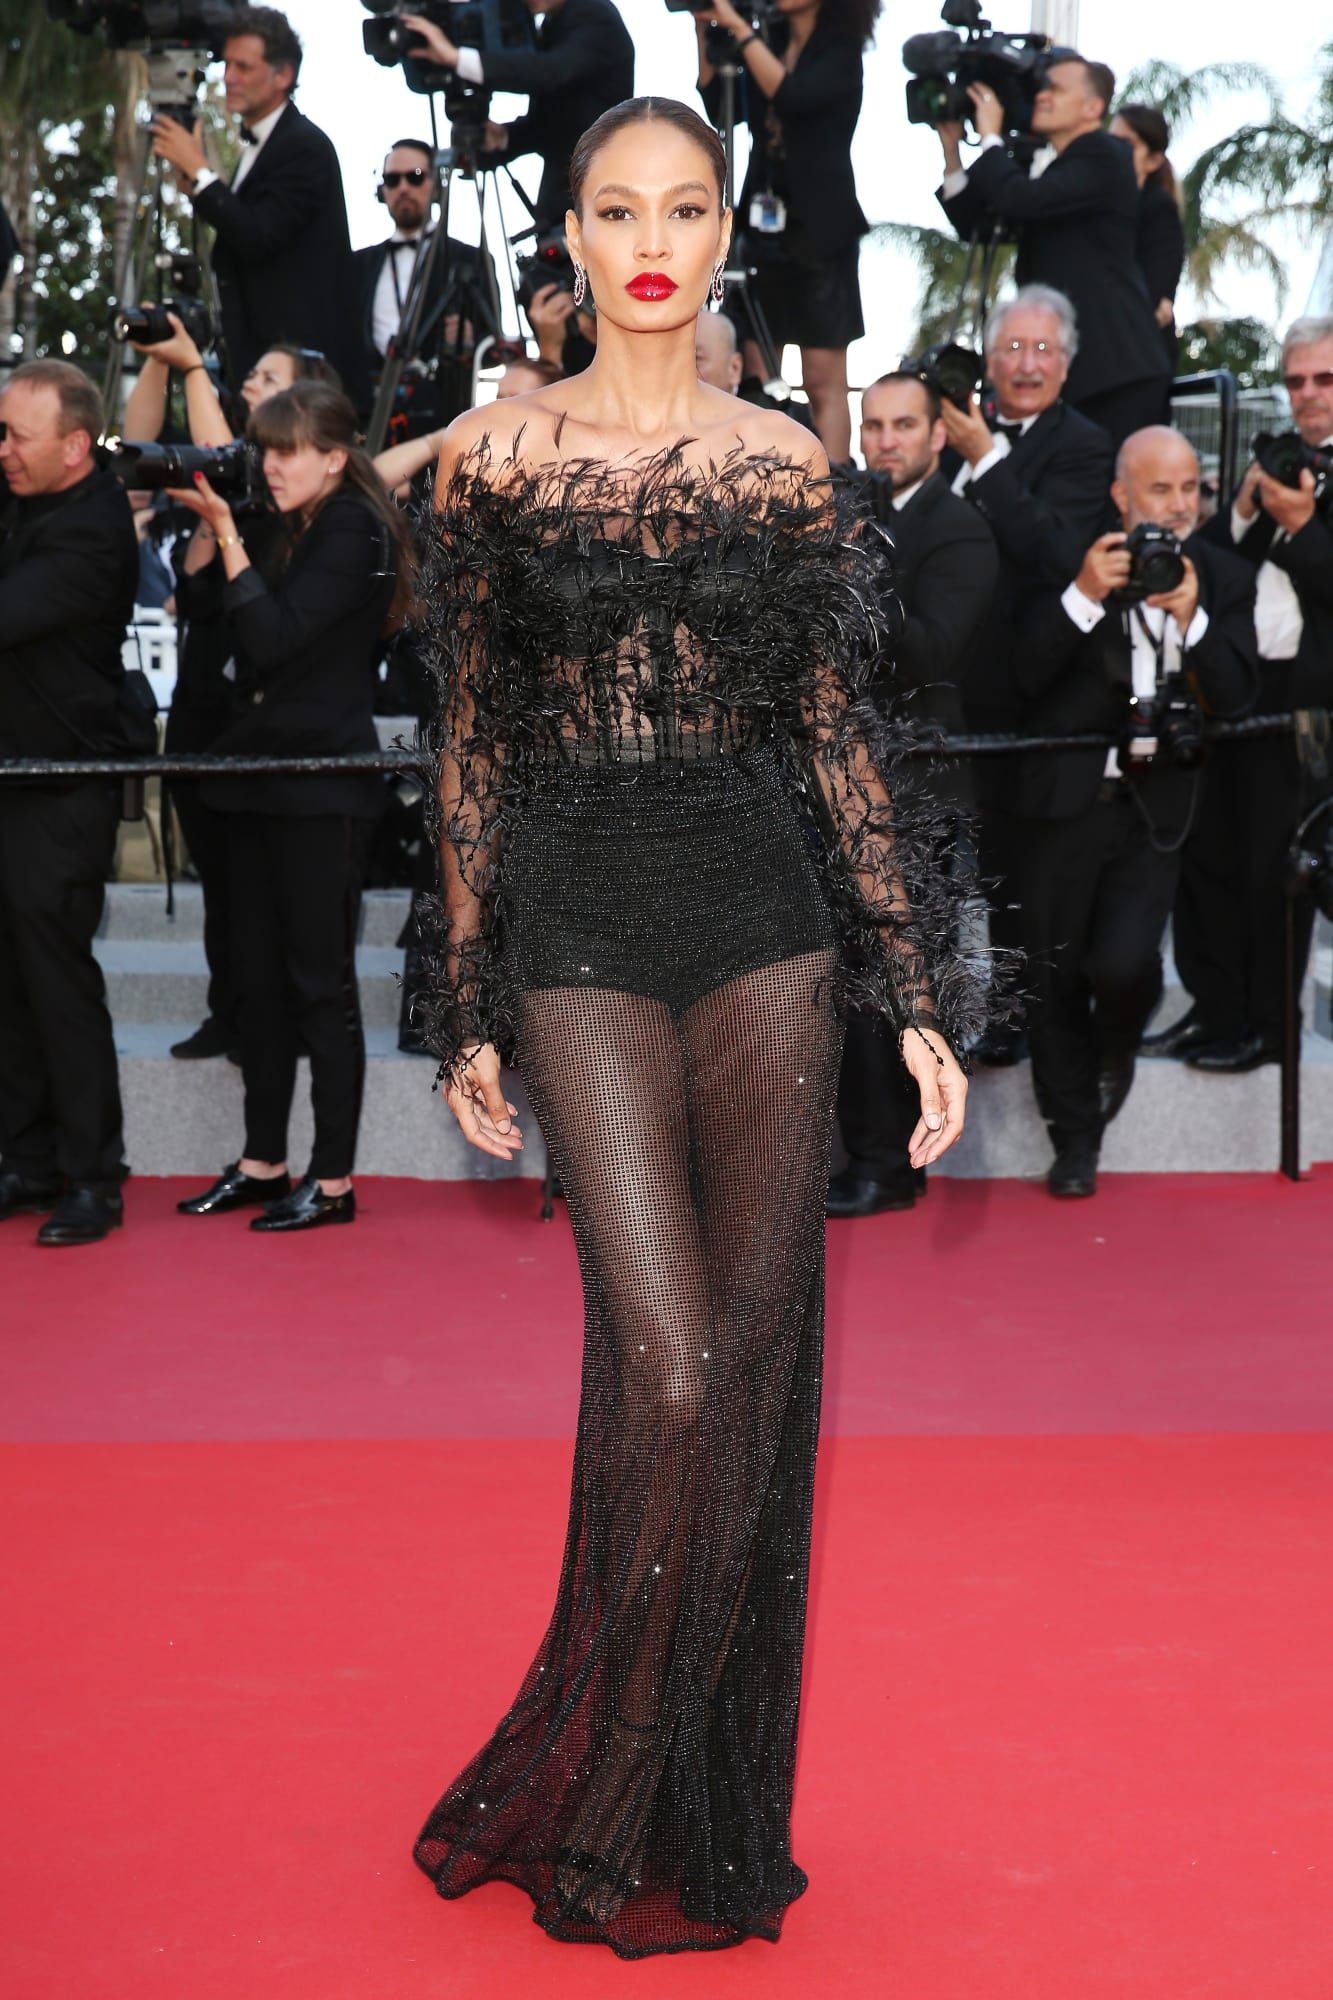 See the Best Red Carpet Looks From the 2018 Cannes Film Festival   Fancy dresses long, Vintage evening gowns, Red carpet dresses